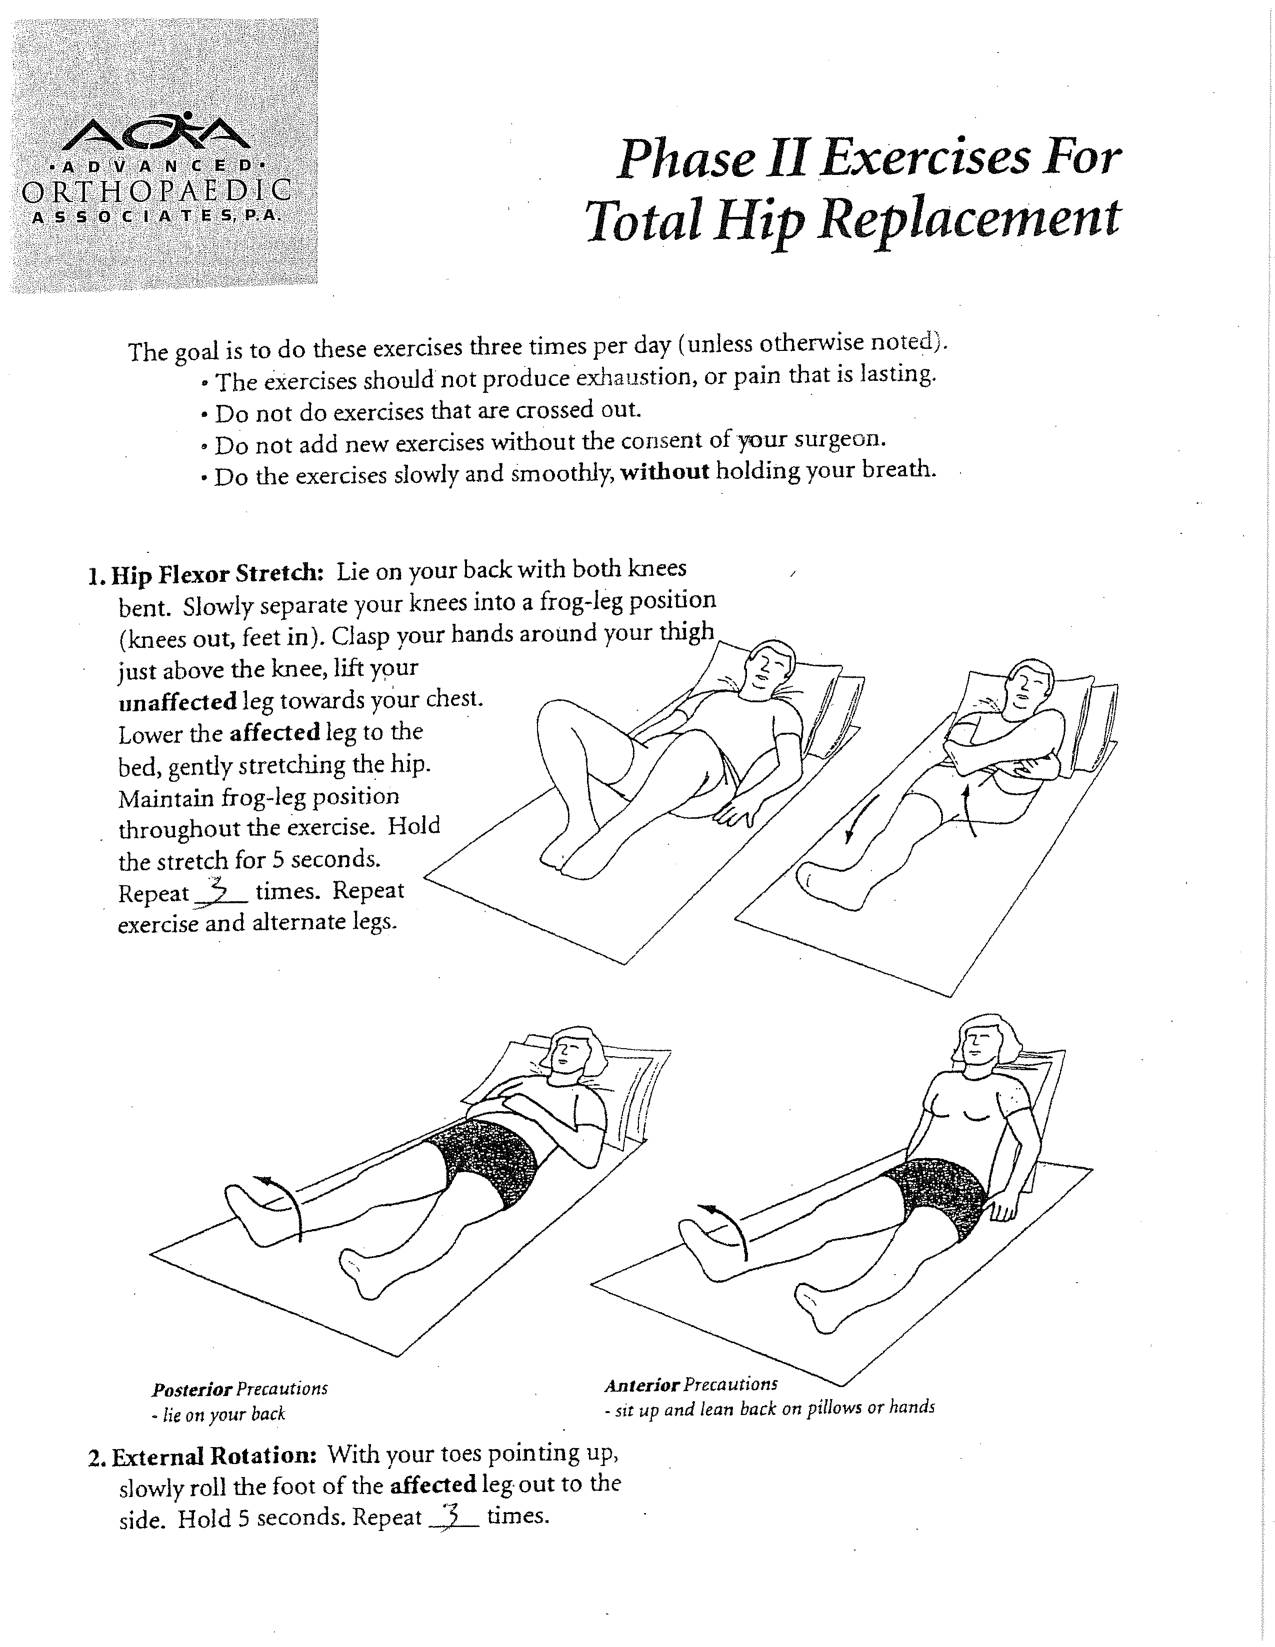 Posterior Total Hip Replacement Exercises Bing Images